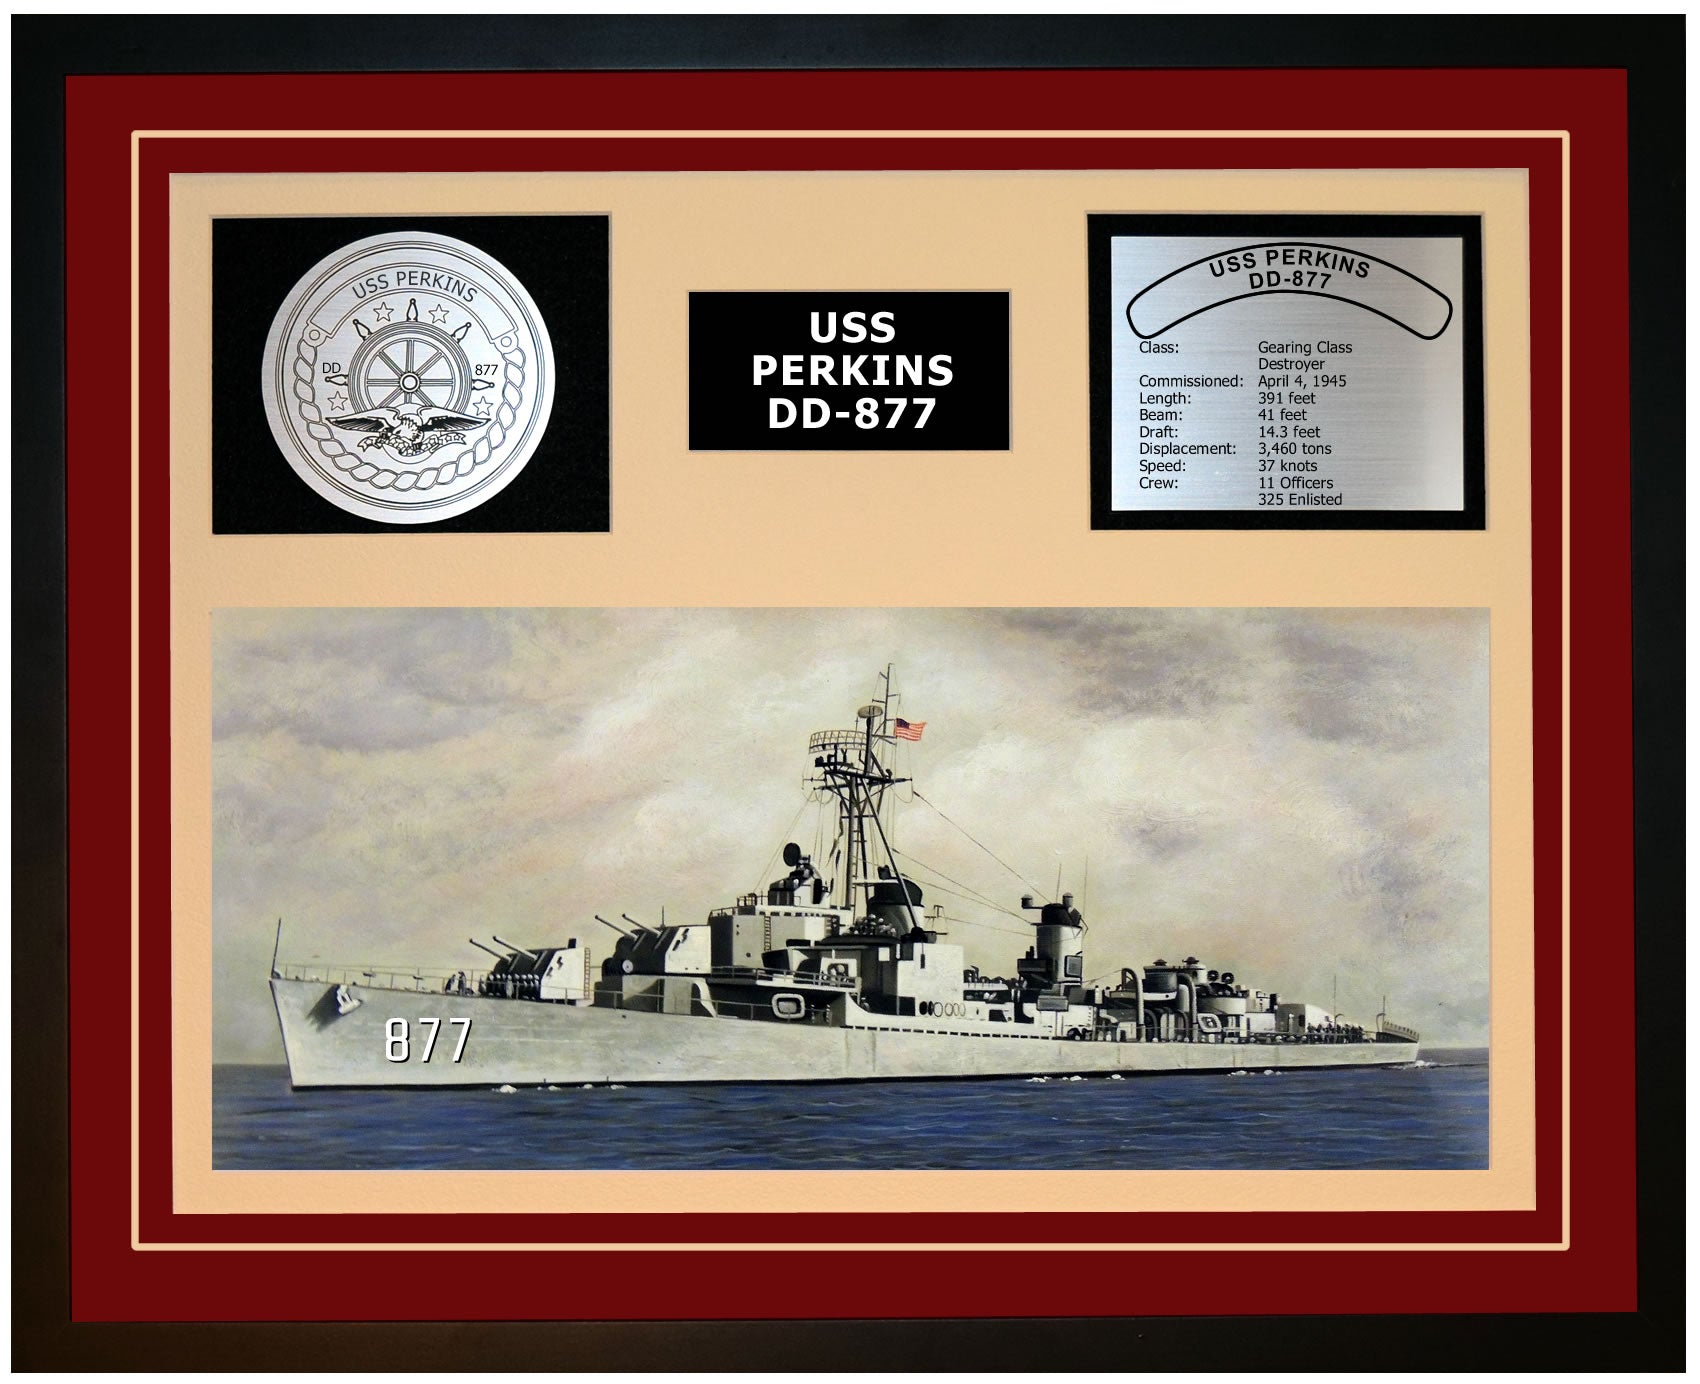 USS PERKINS DD-877 Framed Navy Ship Display Burgundy